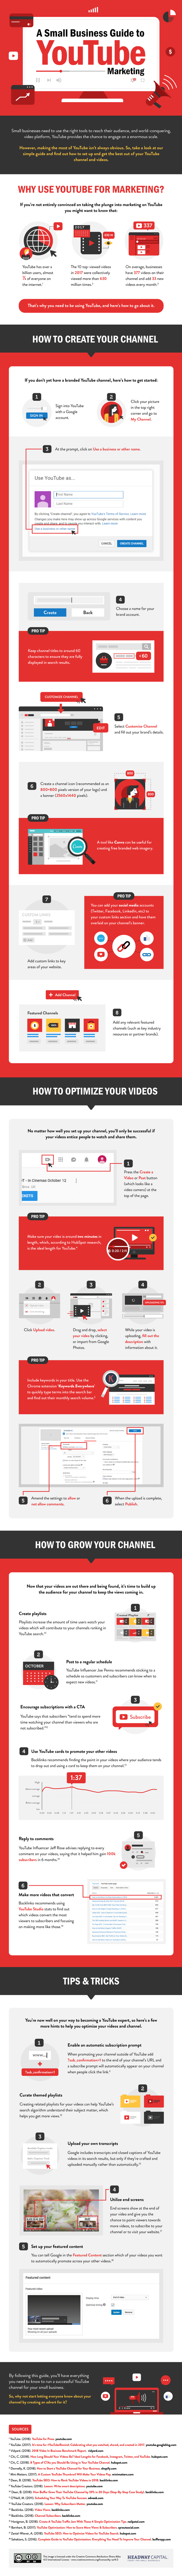 Infographic: YouTube For Small Business